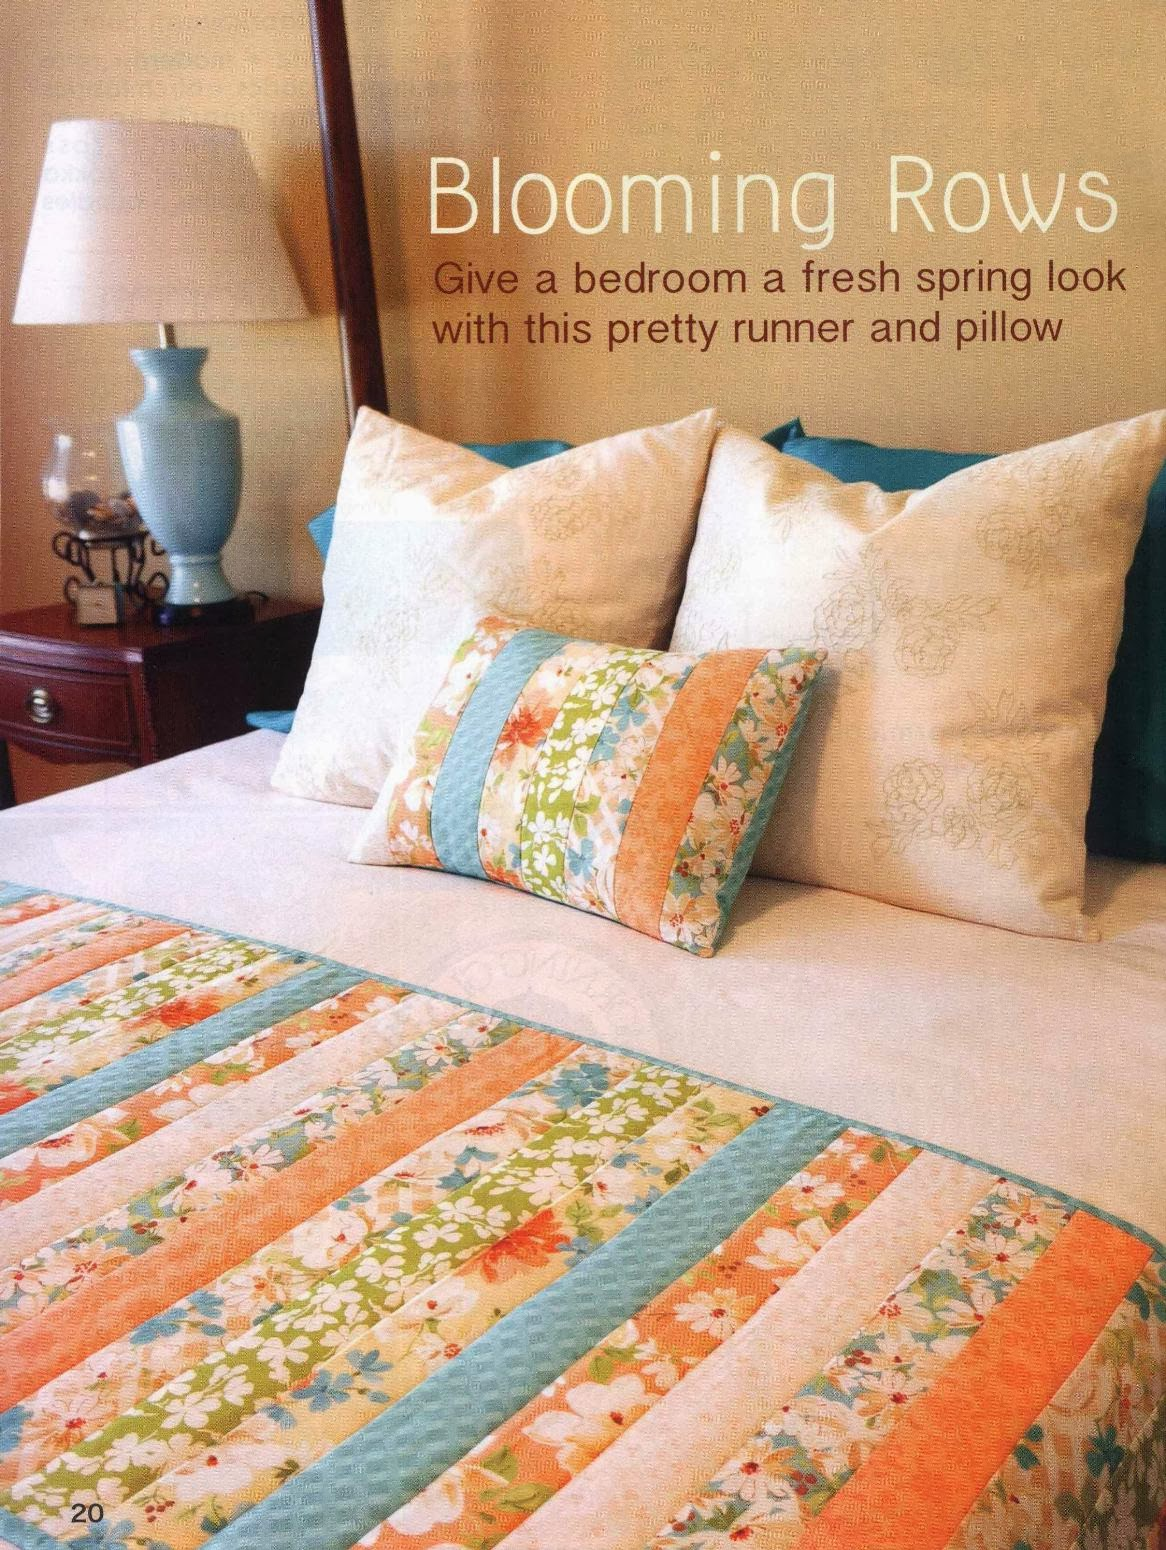 Blooming Rows. Give a bedroom a fresh spring look with this pretty runner and pillow